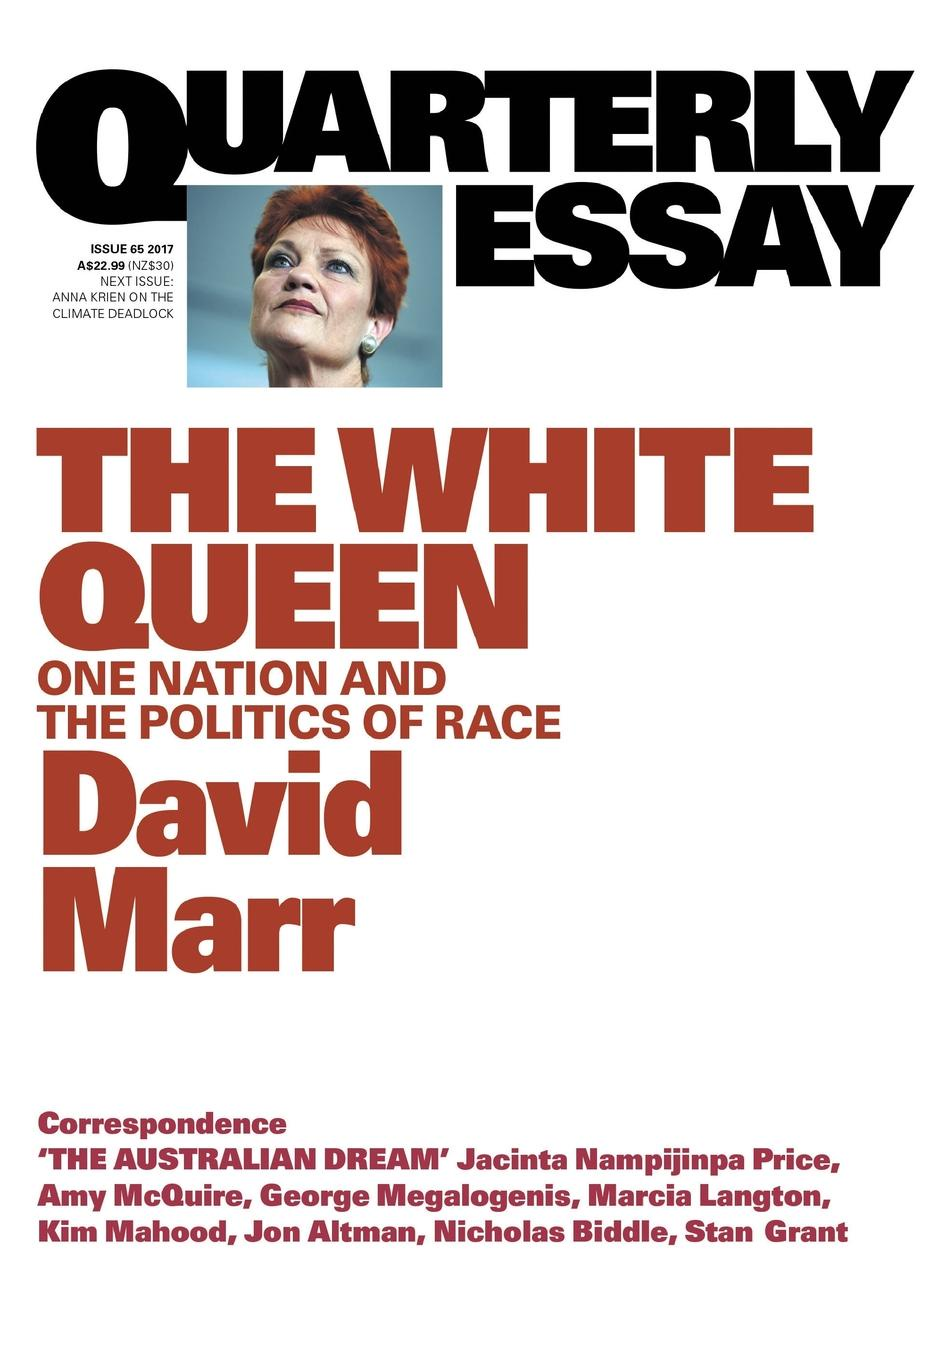 цена David Marr Quarterly Essay 65 The White Queen. One Nation and the Politics of Race в интернет-магазинах